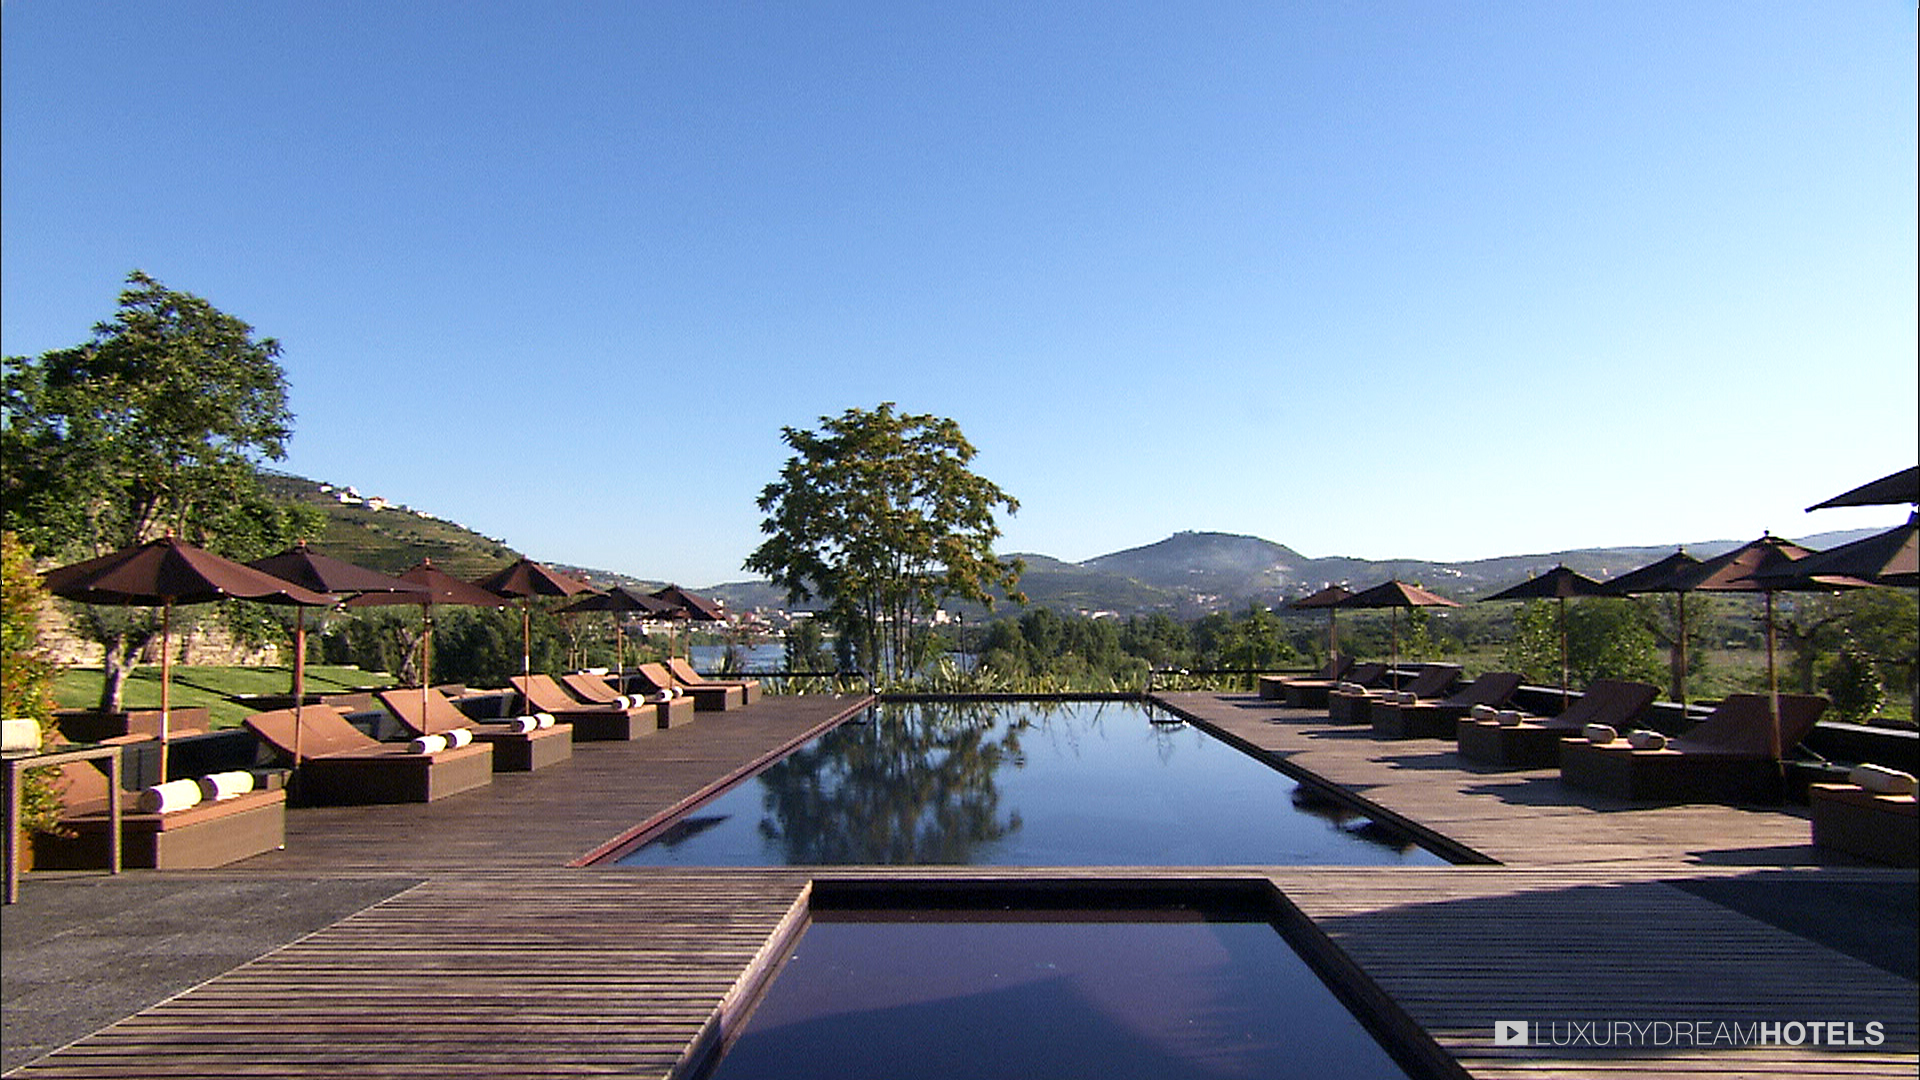 Beautiful Luxury Hotel, Six Senses Douro Valley, Lamego, Portugal   Luxury Dream  Hotels Good Looking